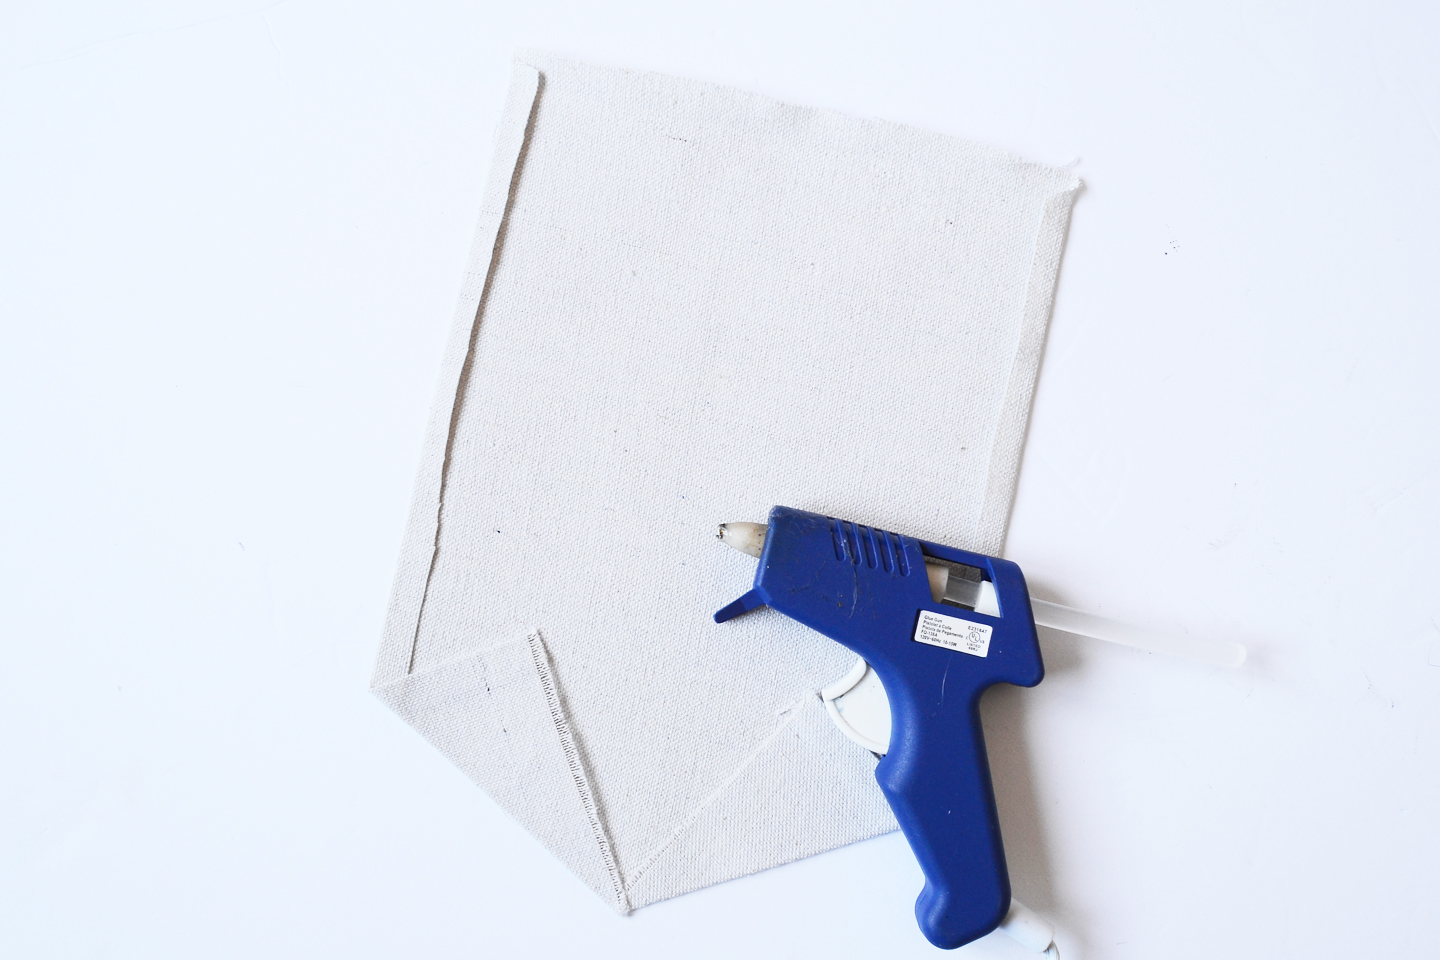 hot glue gun with a piece of canvas